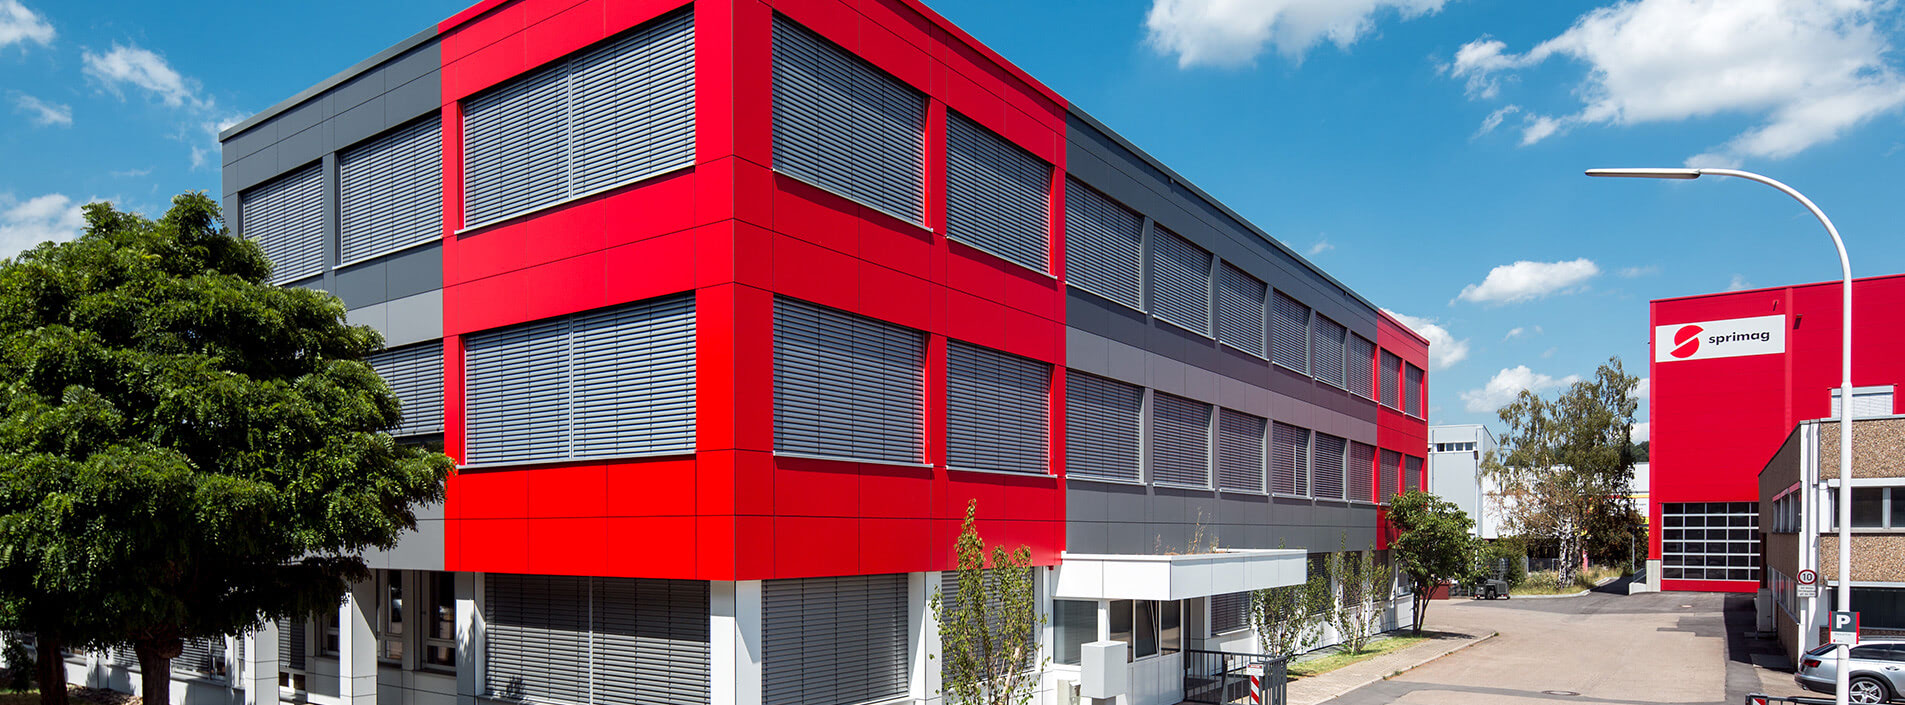 Headquarters Sprimag in Kirchheim Germany